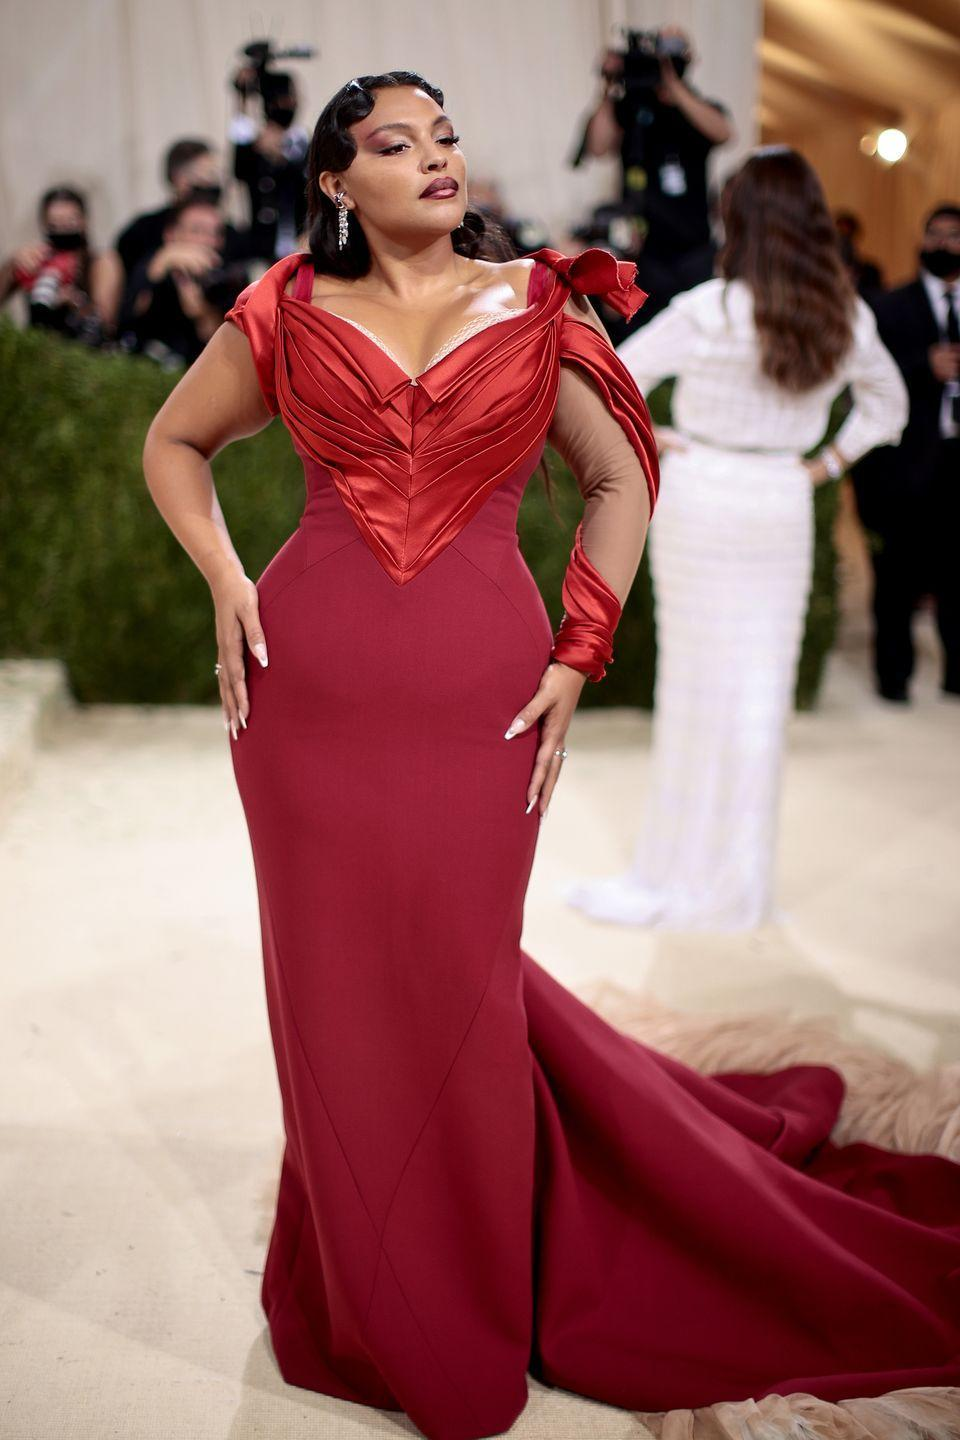 <p>Model Paloma Elesser was the picture of old Hollywood glamour in a deep red satin gown by American designer Zac Posen, which featured a dramatic feathered train.</p>